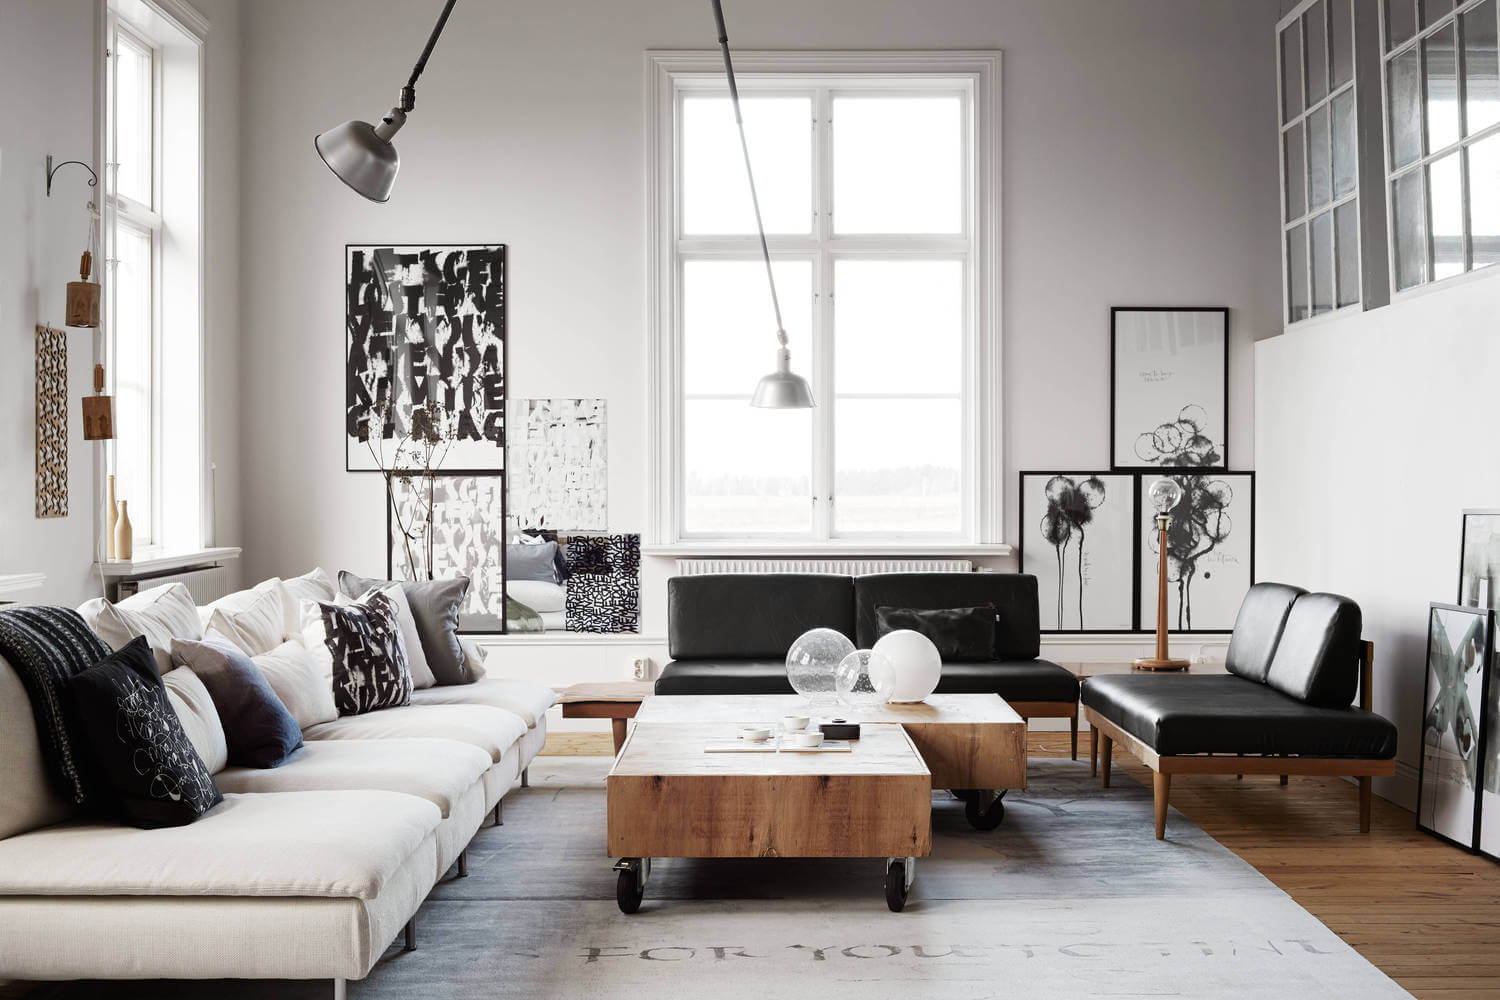 20 modern scandinavian furniture design trends 2016 for Room furniture design